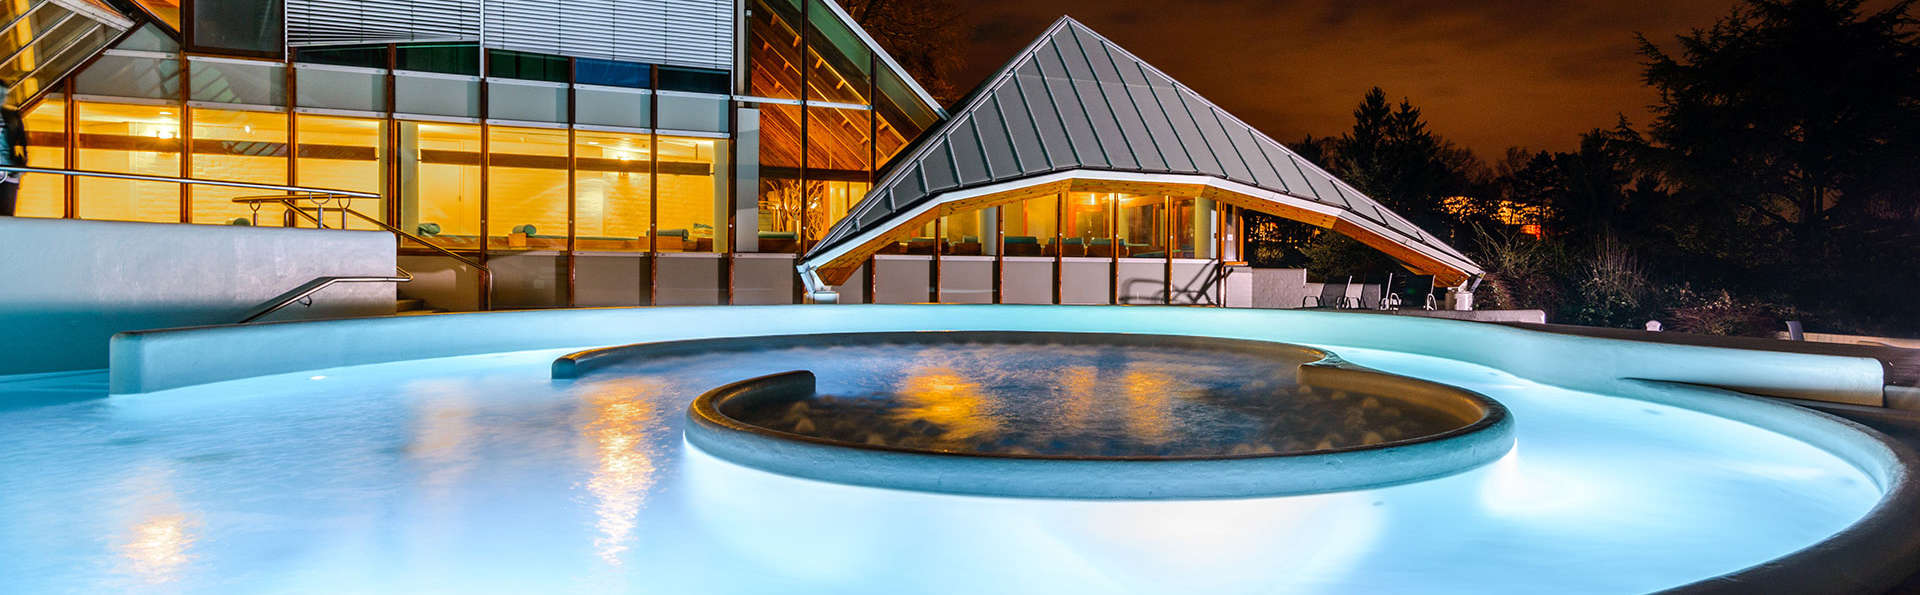 Thermae 2000 - EDIT_spa5.jpg